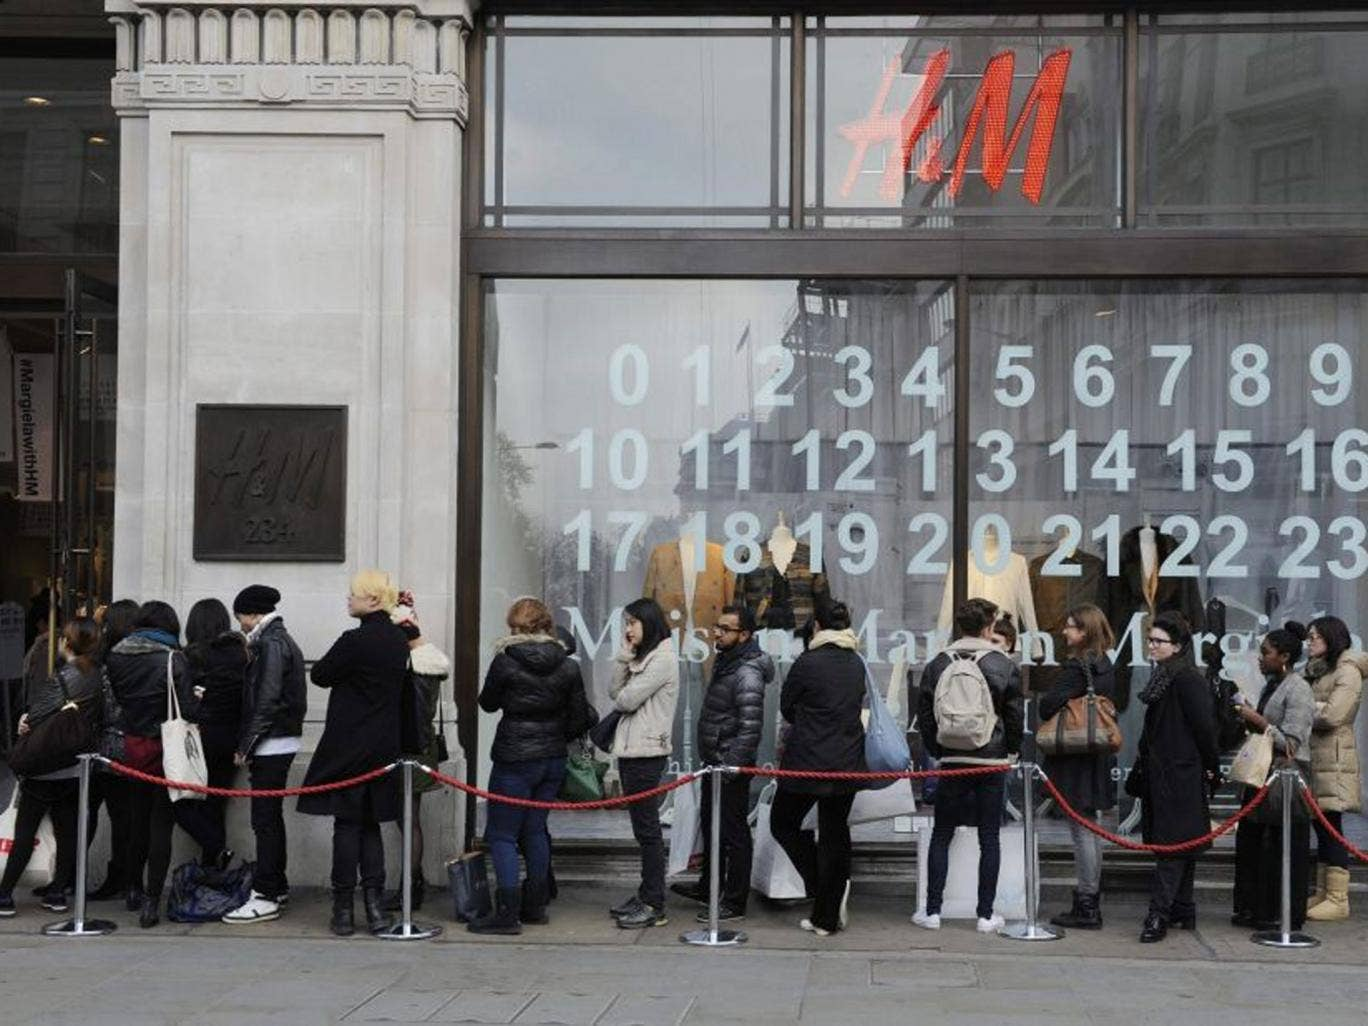 Shoppers queue outside an H&M store for the launch of Maison Martin Margiela's special collection